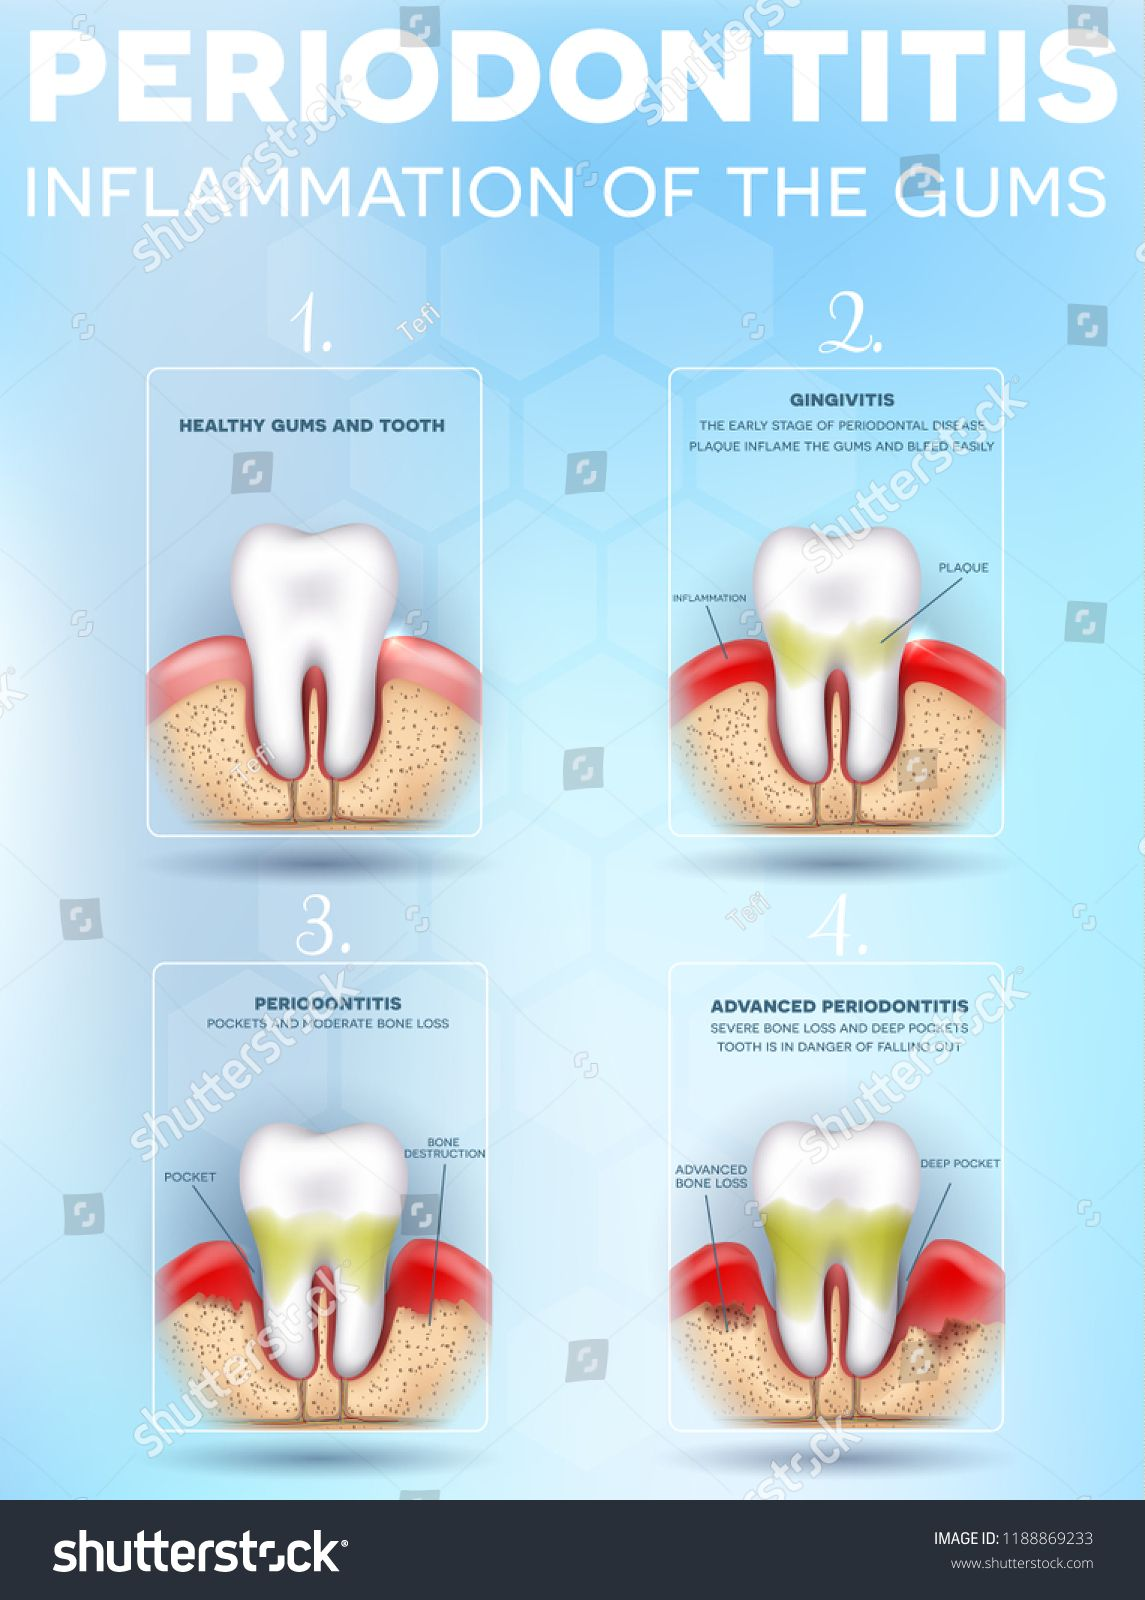 hight resolution of healthy tooth gingivitis and at the end advanced periodontitis medical poster diagram gingivitis periodontitis tooth teeth dental dentistry caries